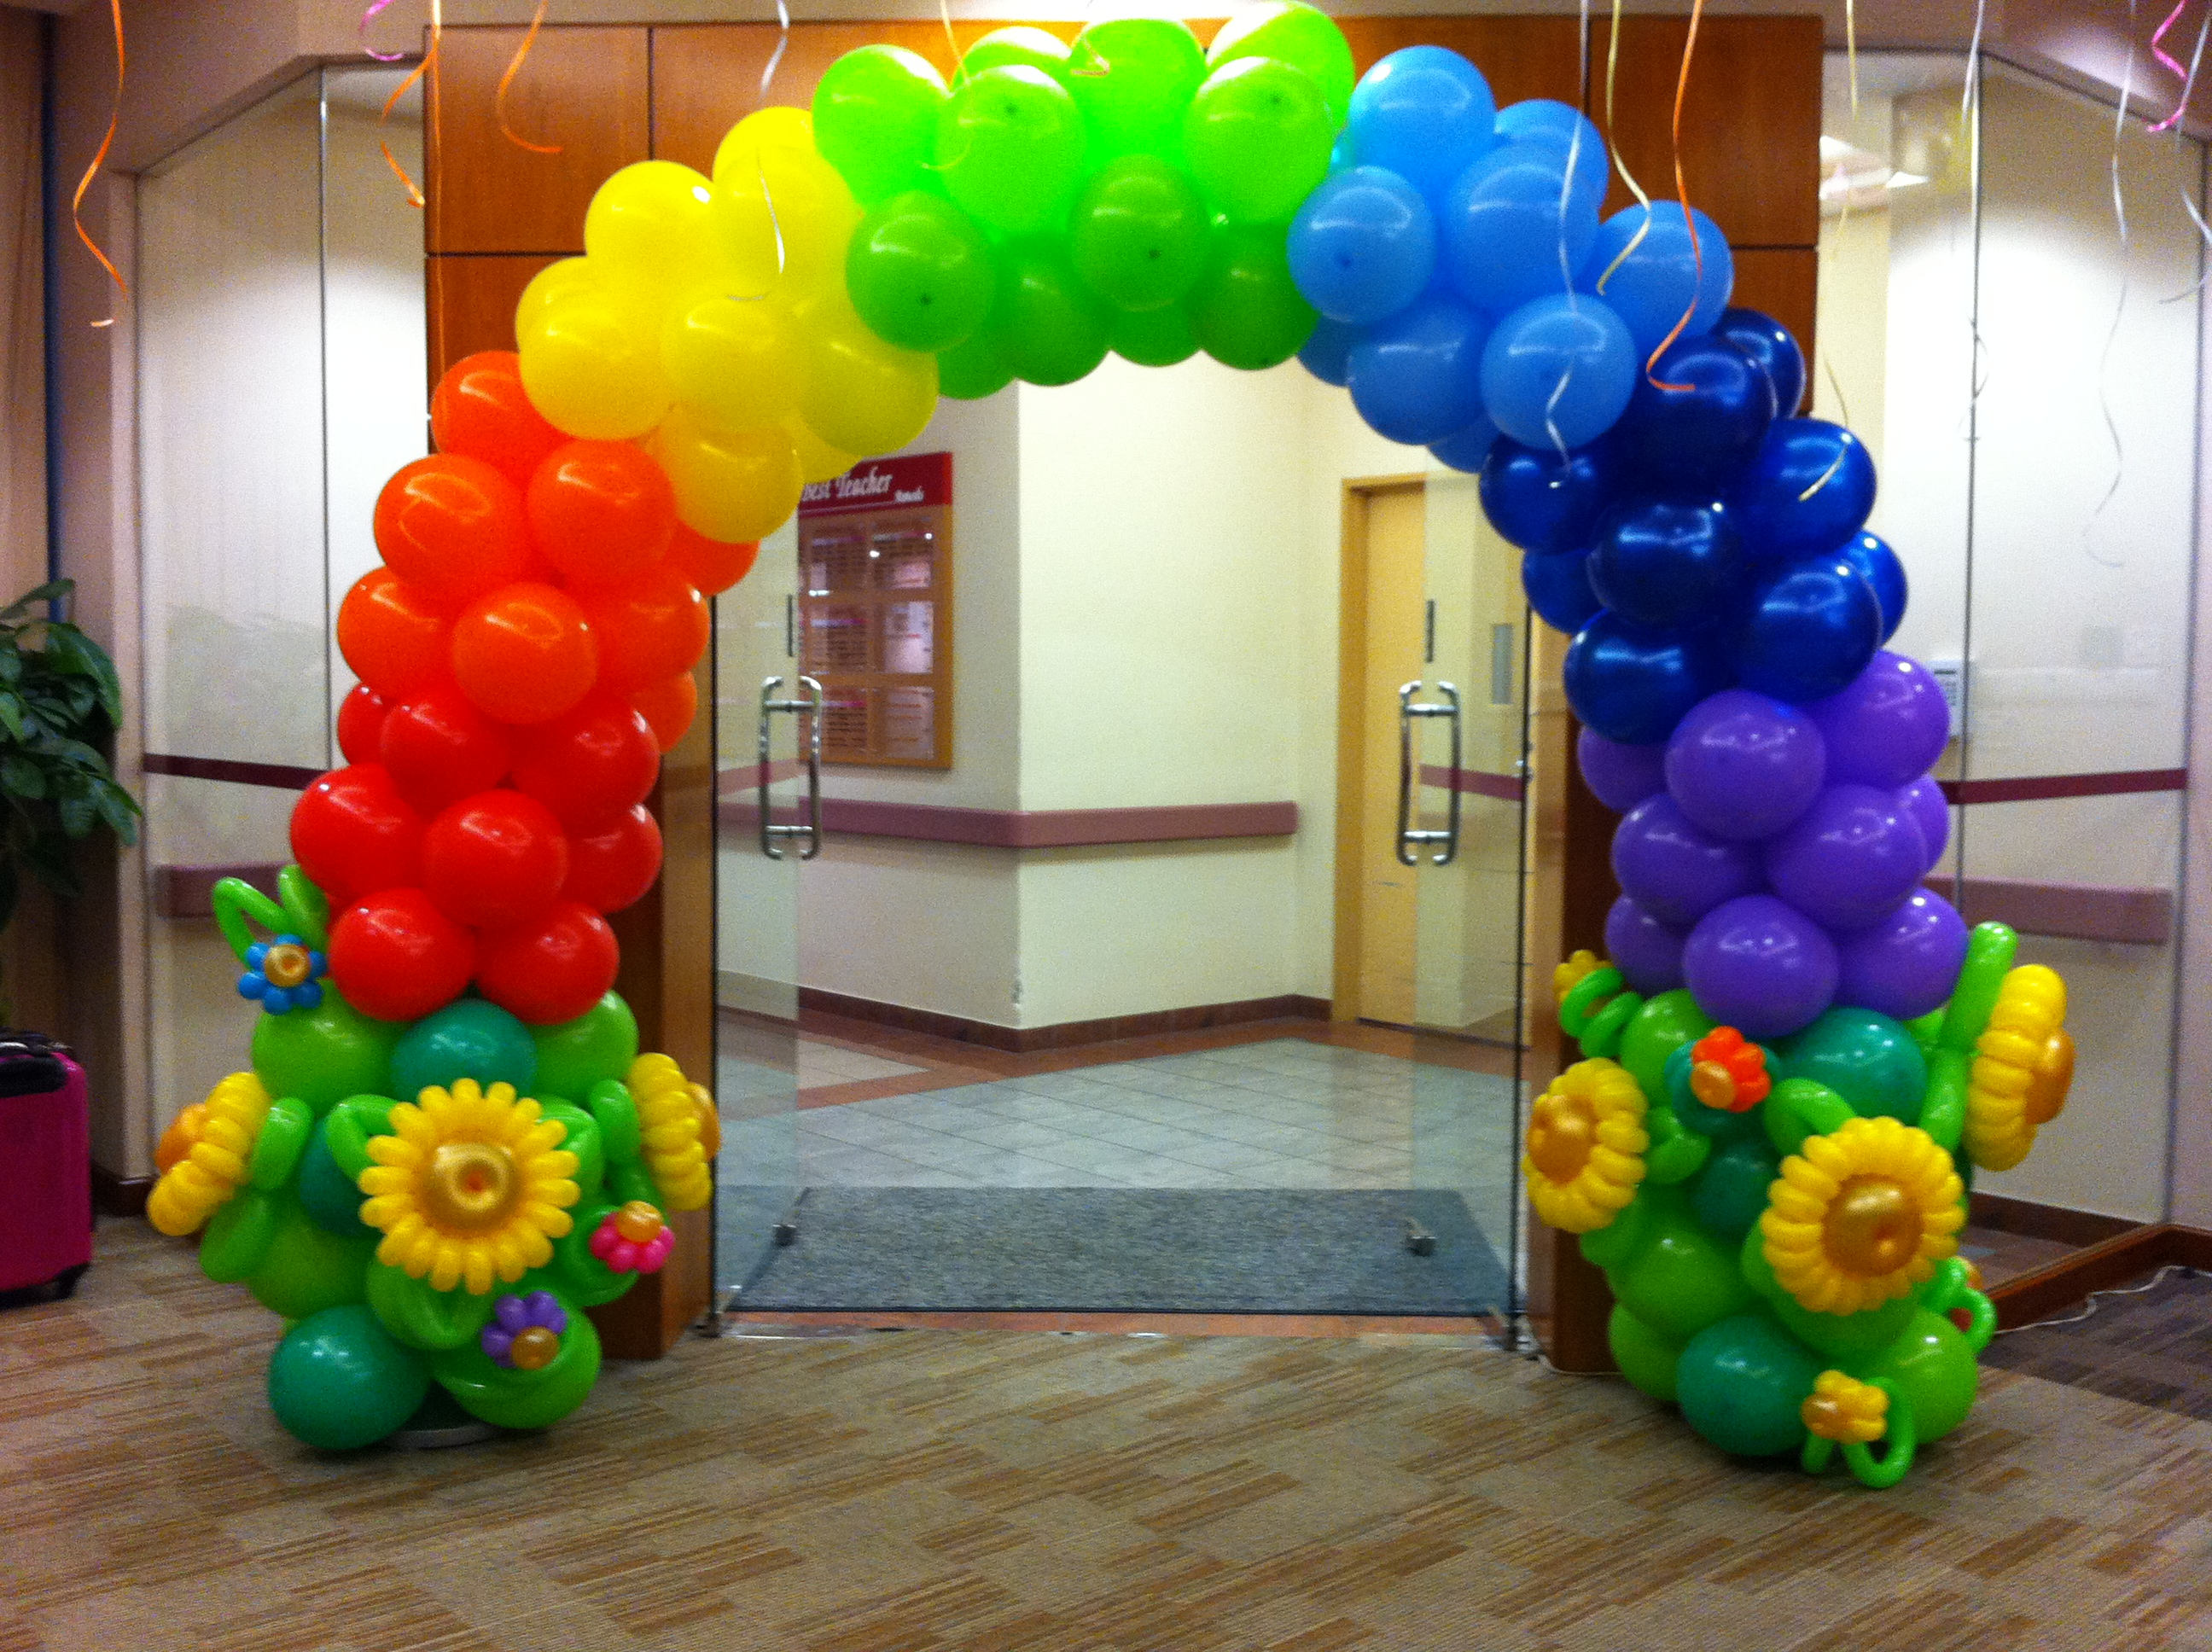 Singapore balloon rainbow arch that balloons for Balloon arch decoration ideas